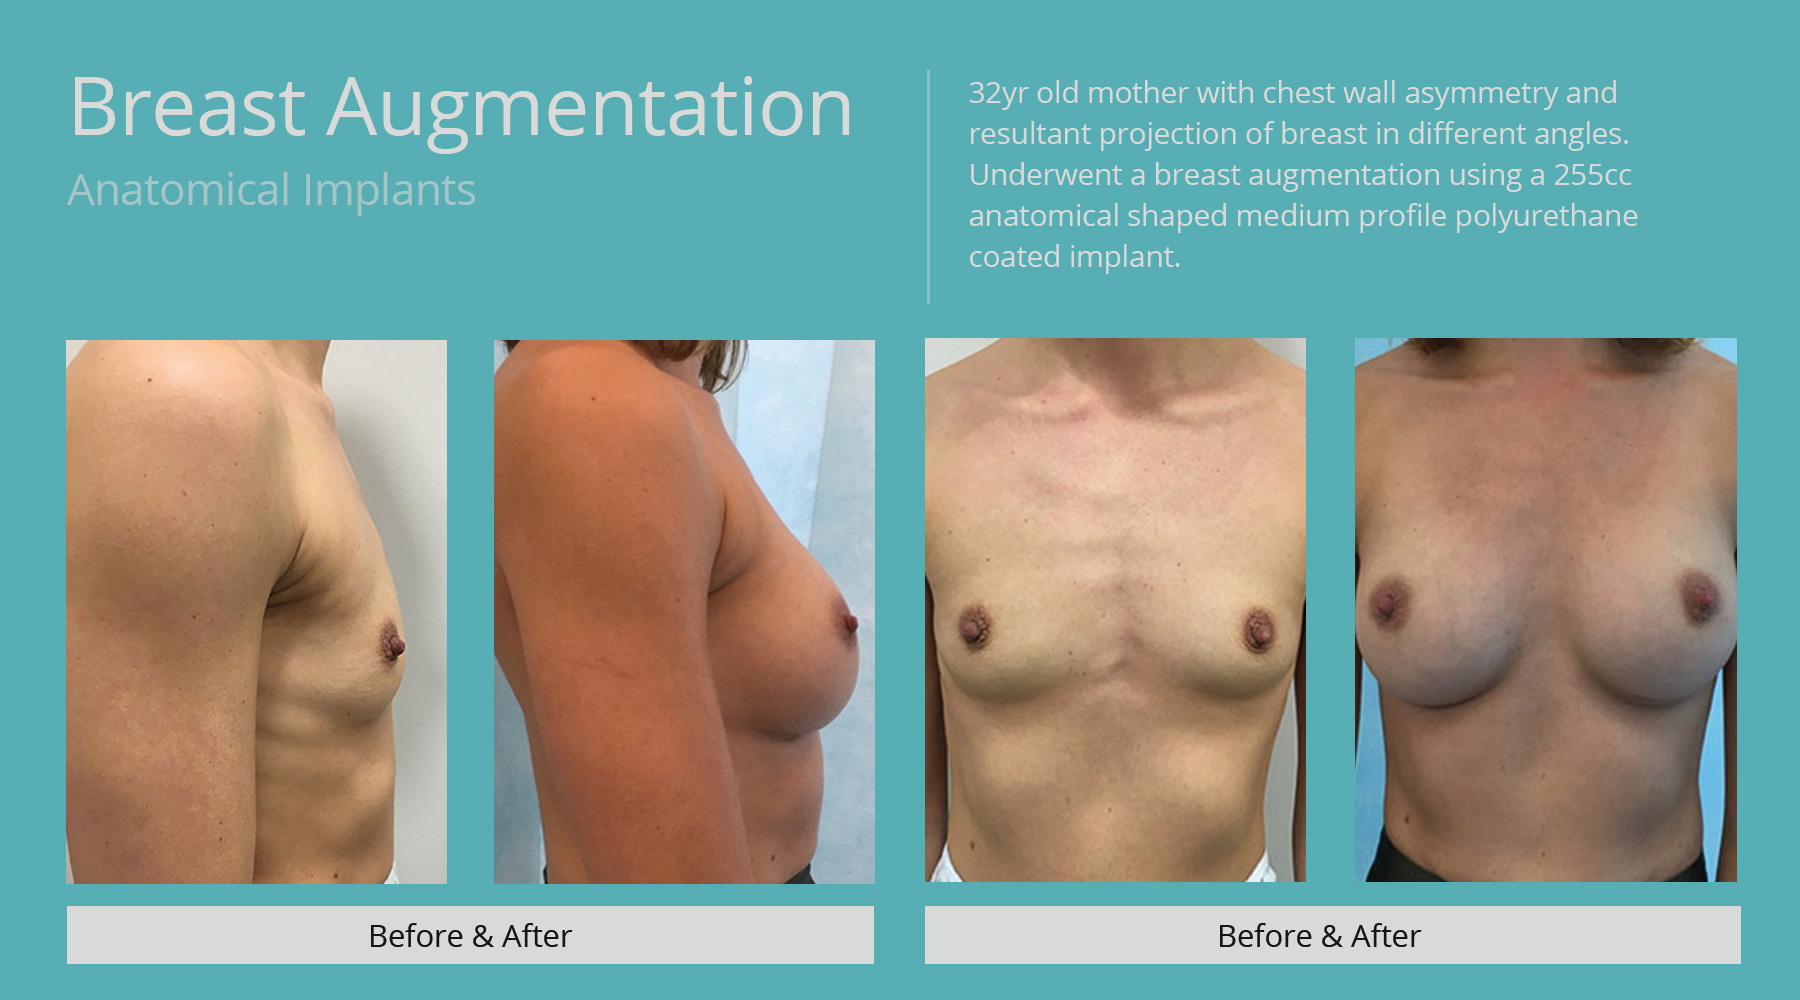 Breast-Augmentation-anatomical-5